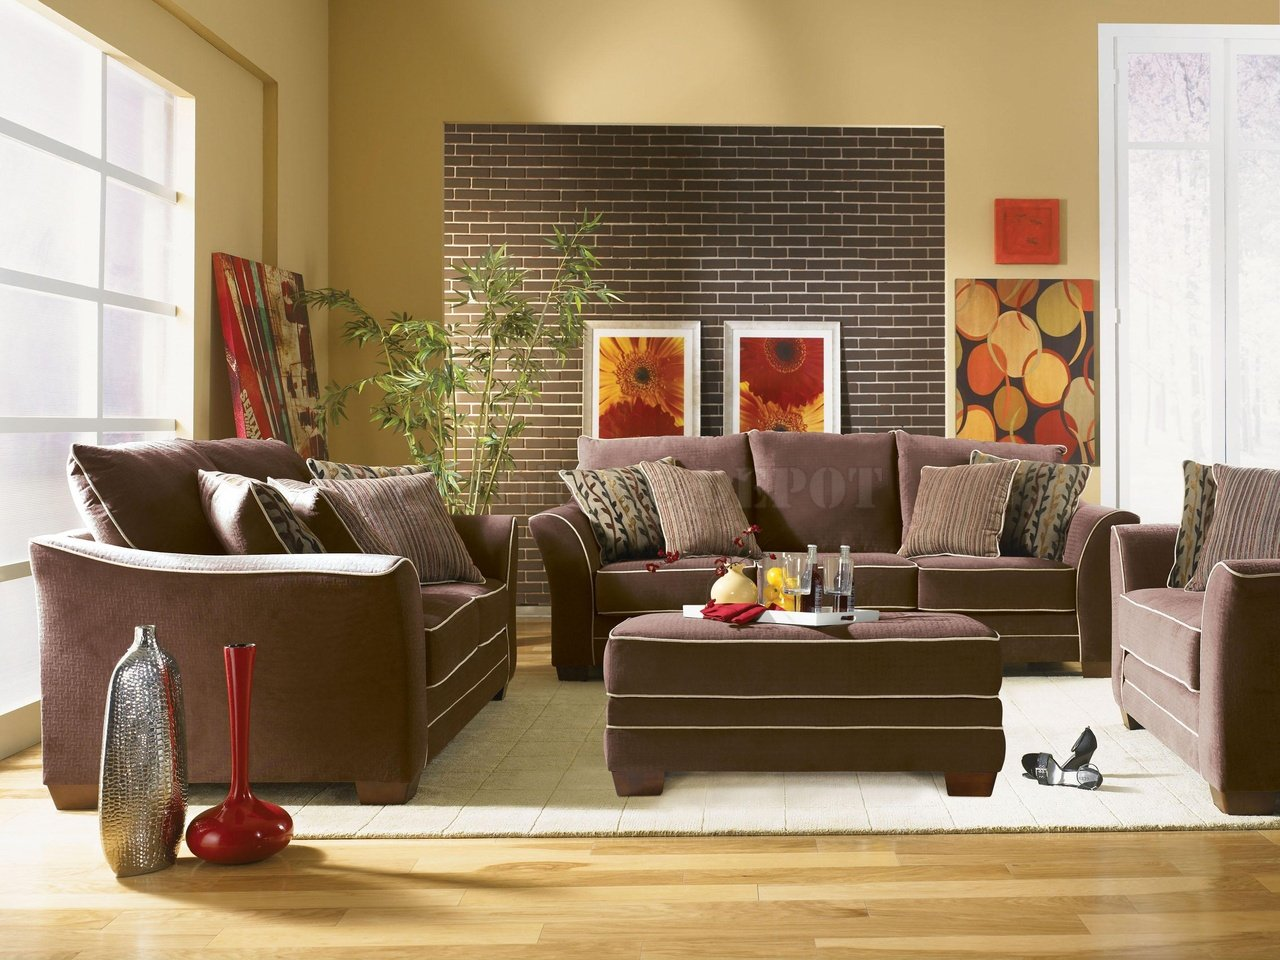 Interior design ideas interior designs home design ideas for Ideas of living room furniture